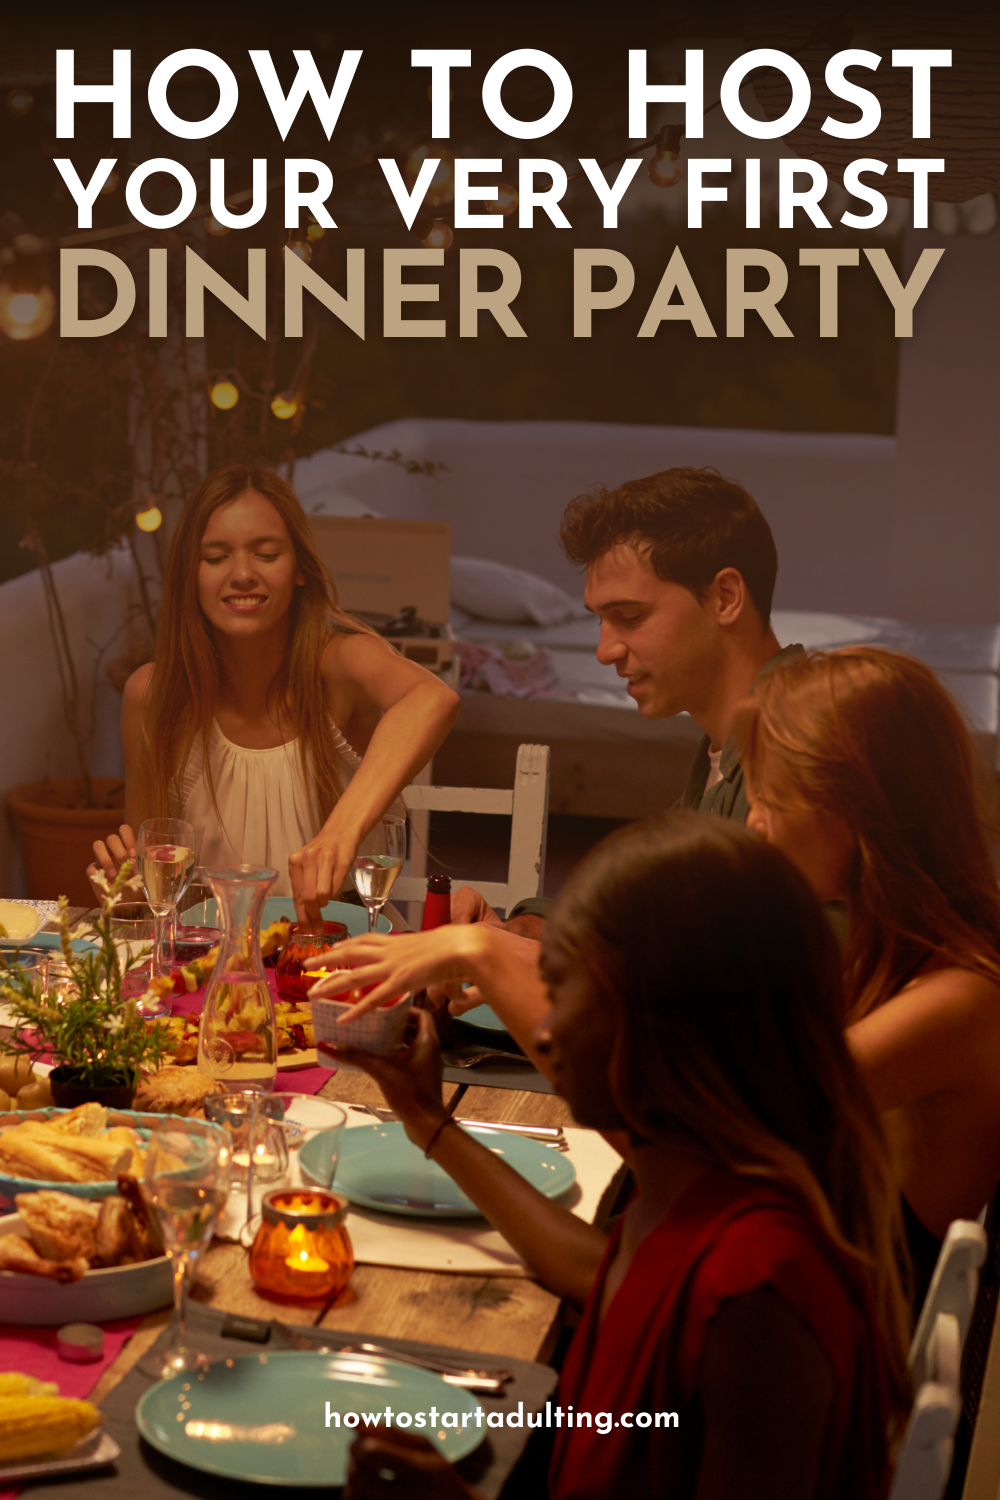 How To Host Your Very First Dinner Party